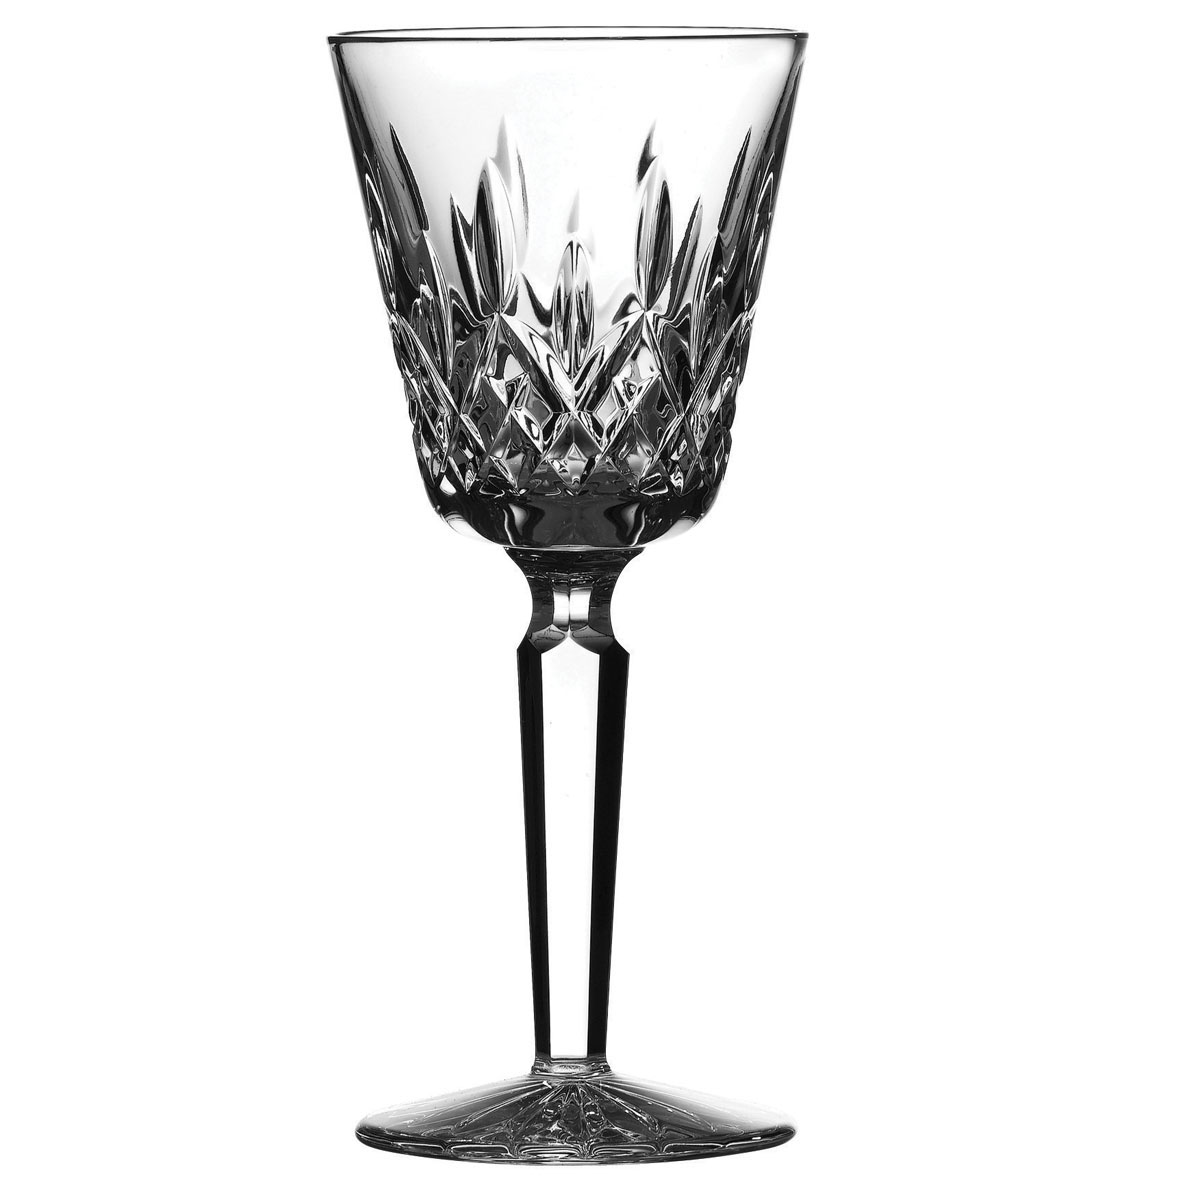 Waterford Crystal, Lismore Tall Wine Claret Glass, Single